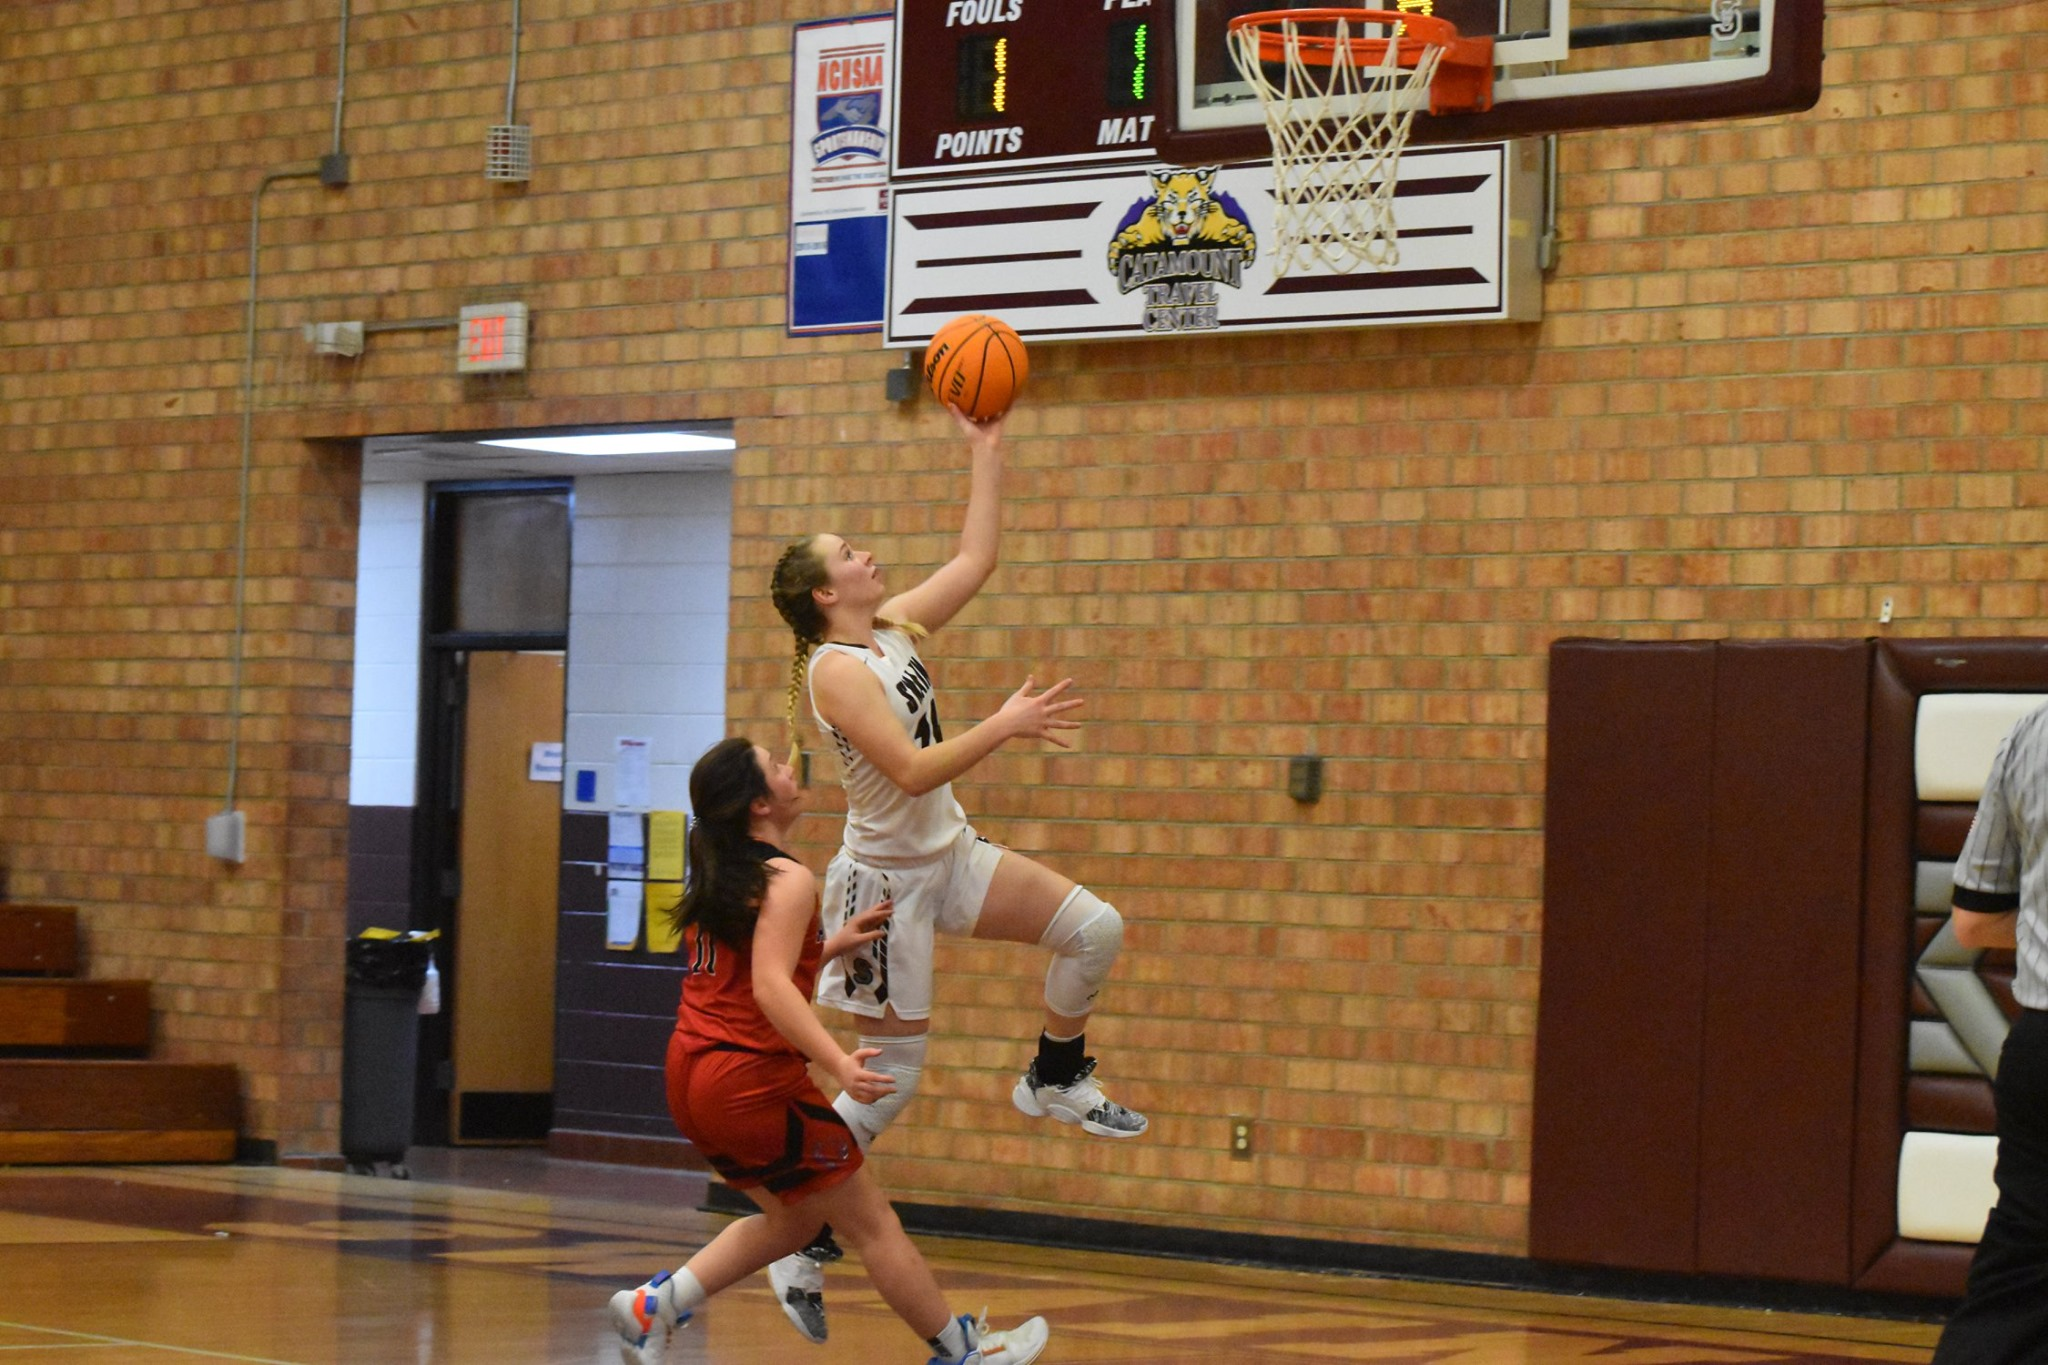 Lady Devils Down Cats to Open the Season